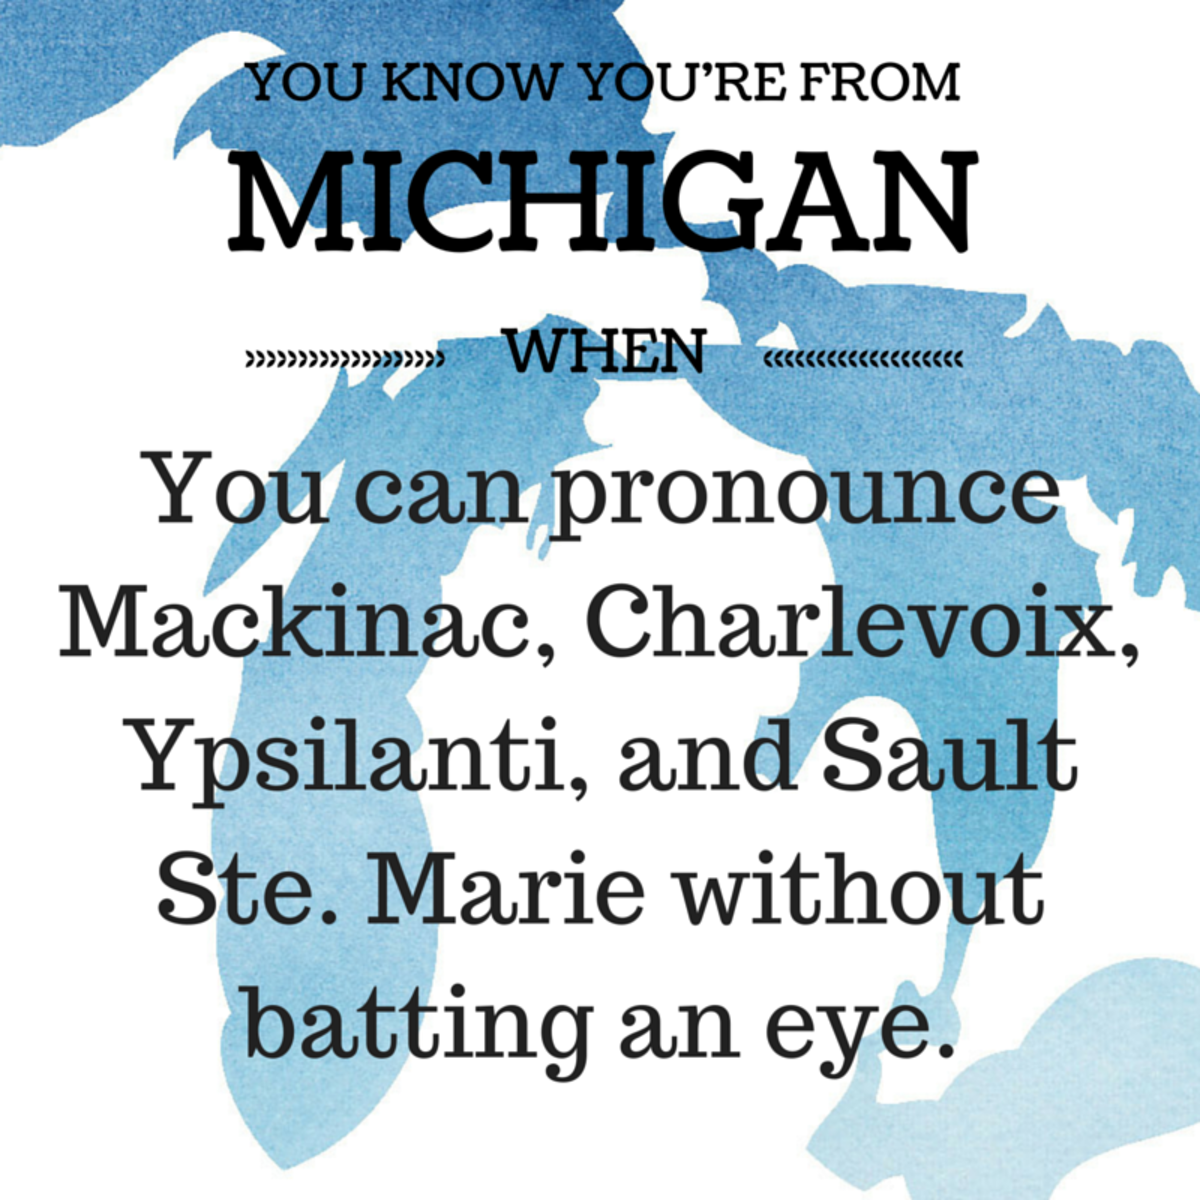 The Michigan Accent & Slang Words | Owlcation